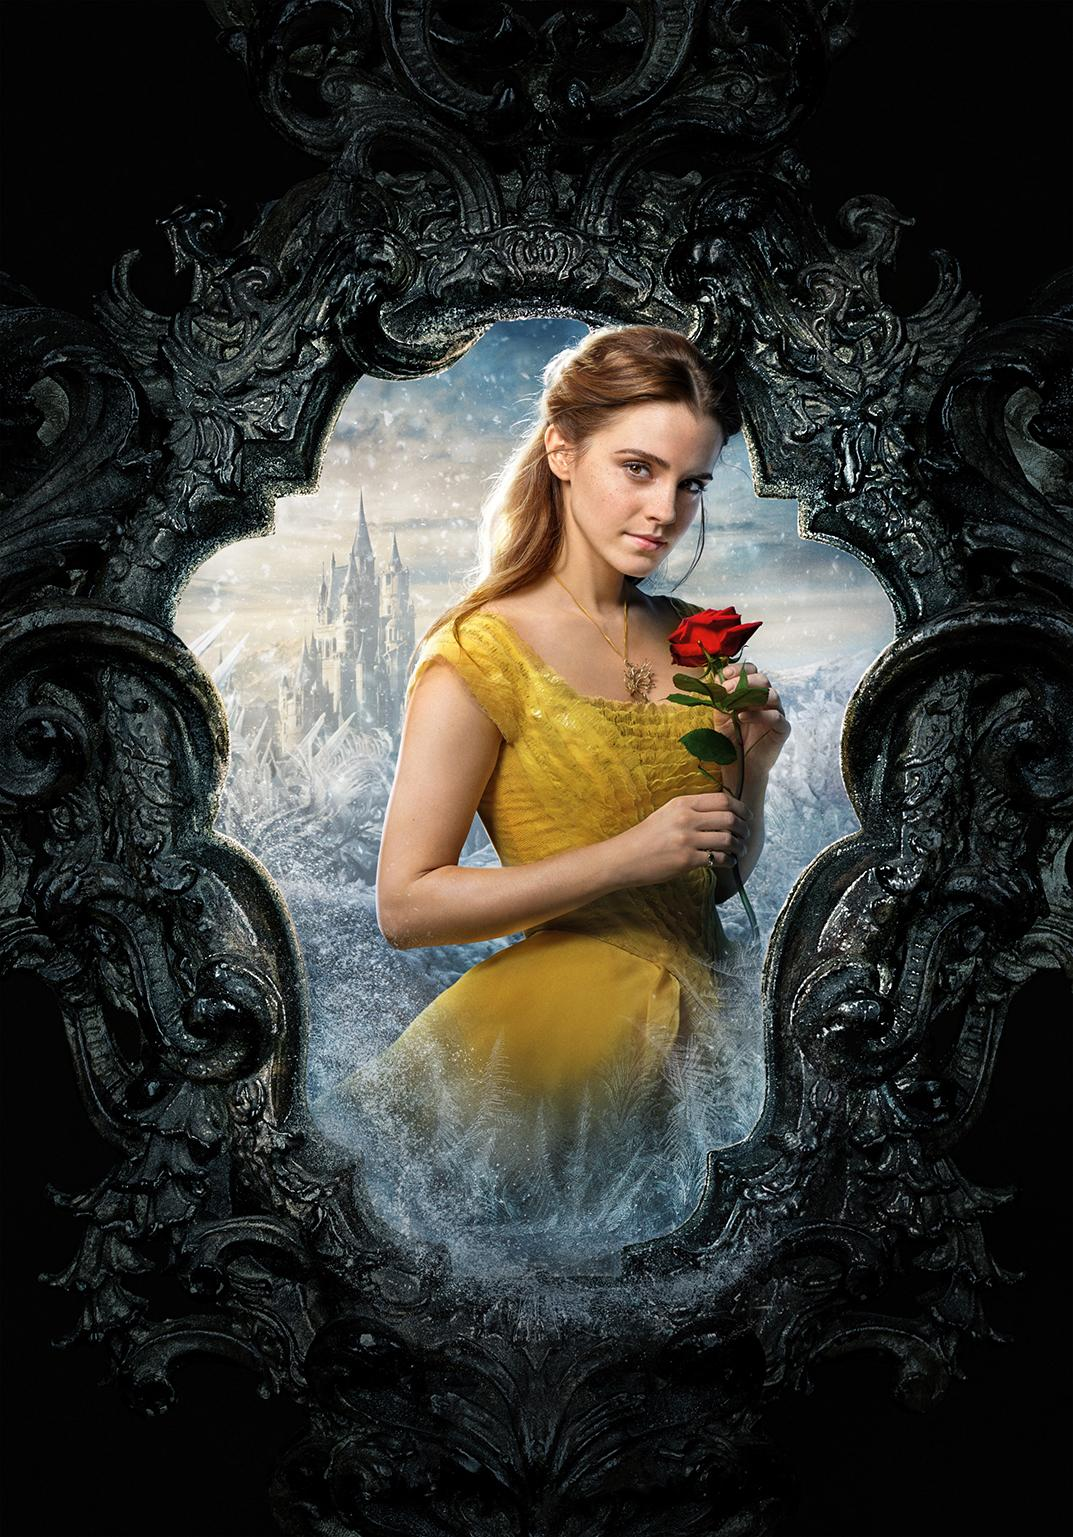 Belle in Beauty in the Beast